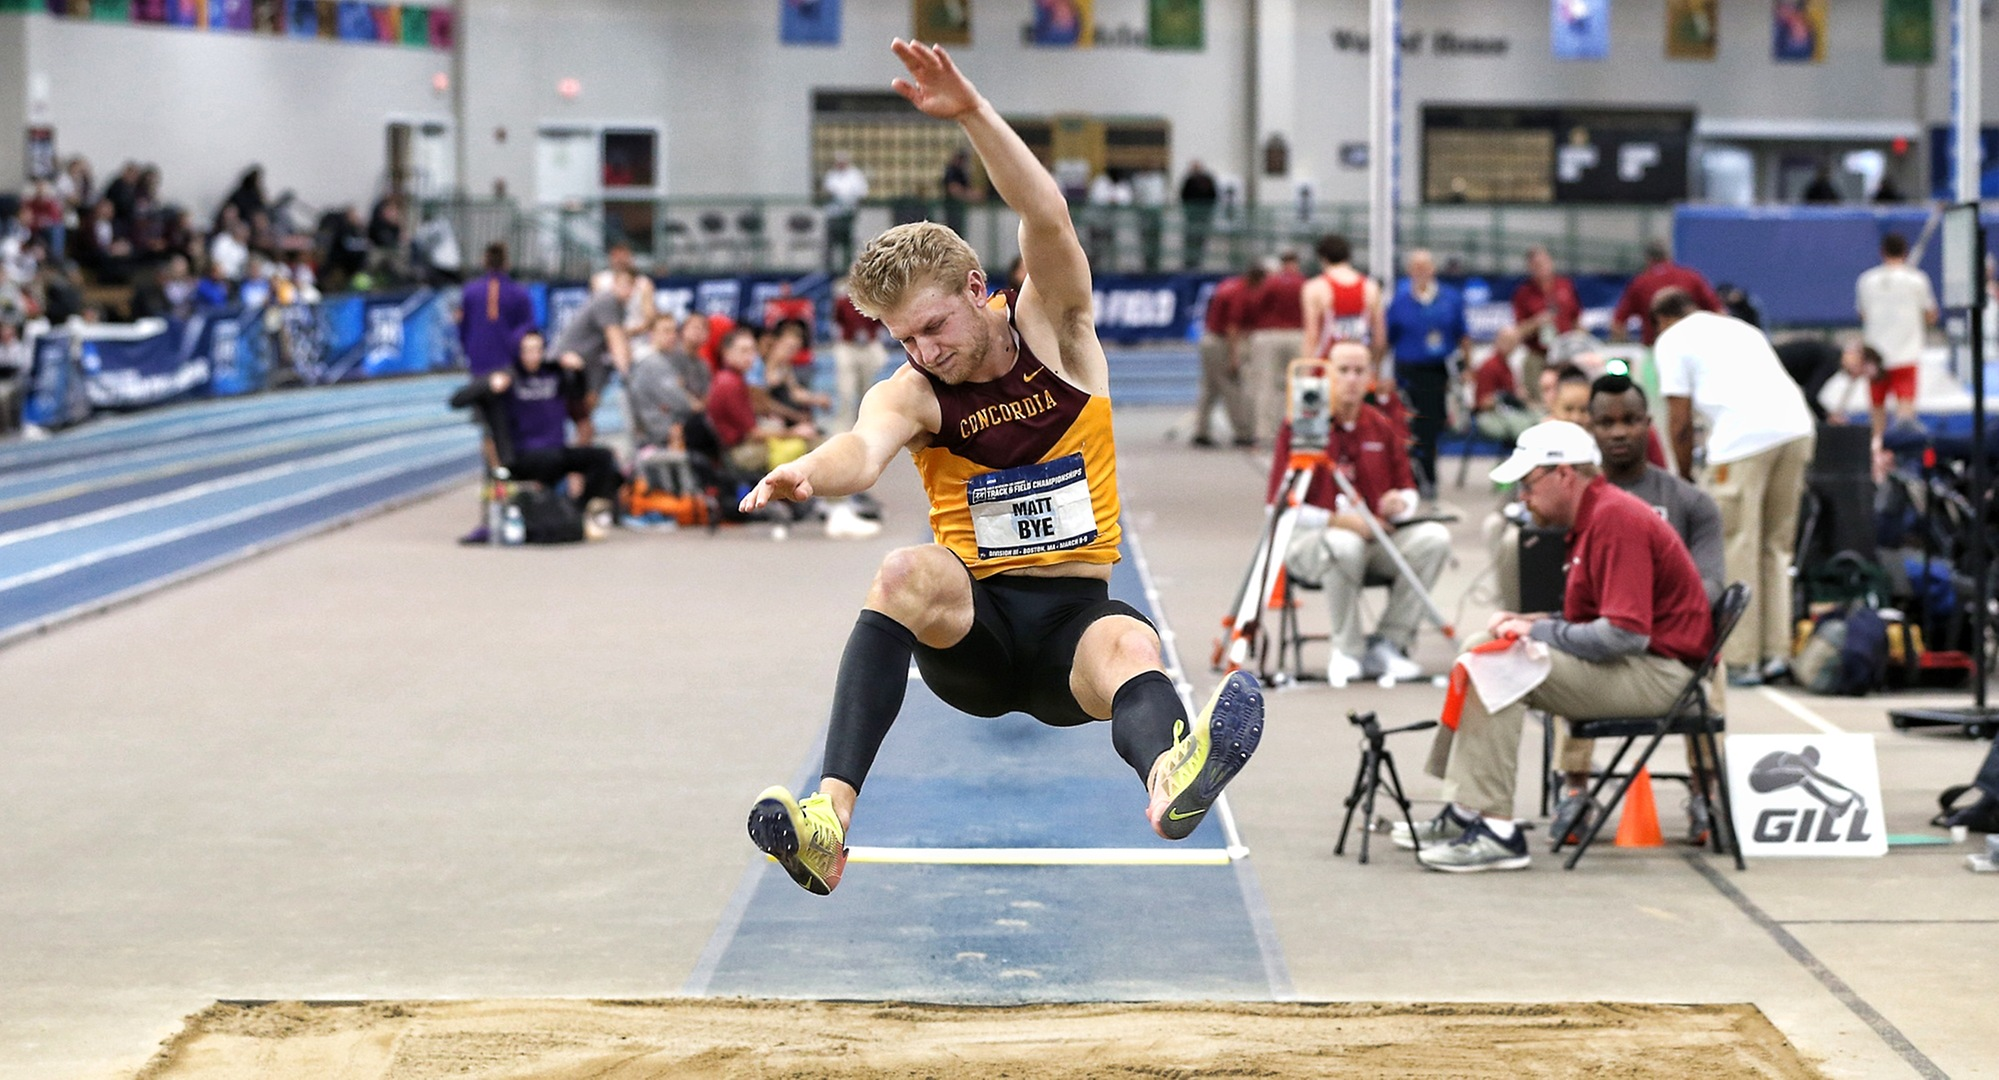 Junior Matt Bye soars to a distance of 20-09.25 in the long jump on his way to an 11th-place finish in the heptathlon at the NCAA National Indoor Meet.